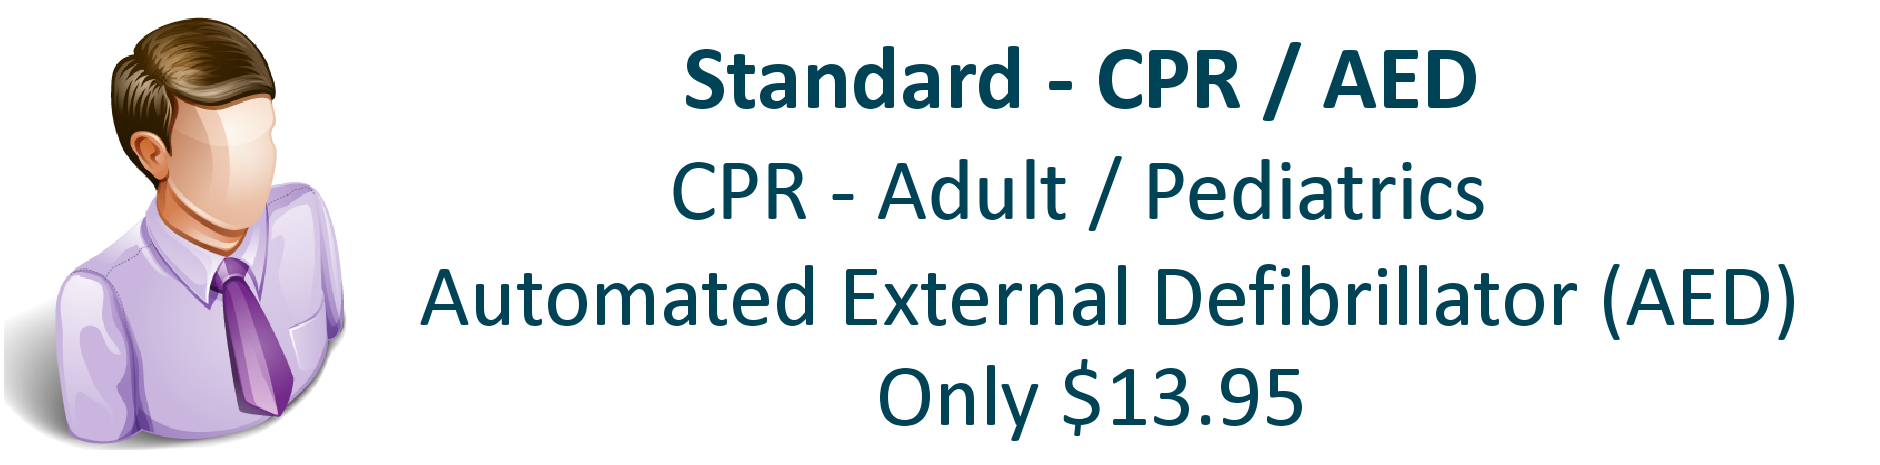 Online cpr aed first aid certification cpr certification cpr certification cpr recertification cpr online online cpr bls online basic 1betcityfo Gallery